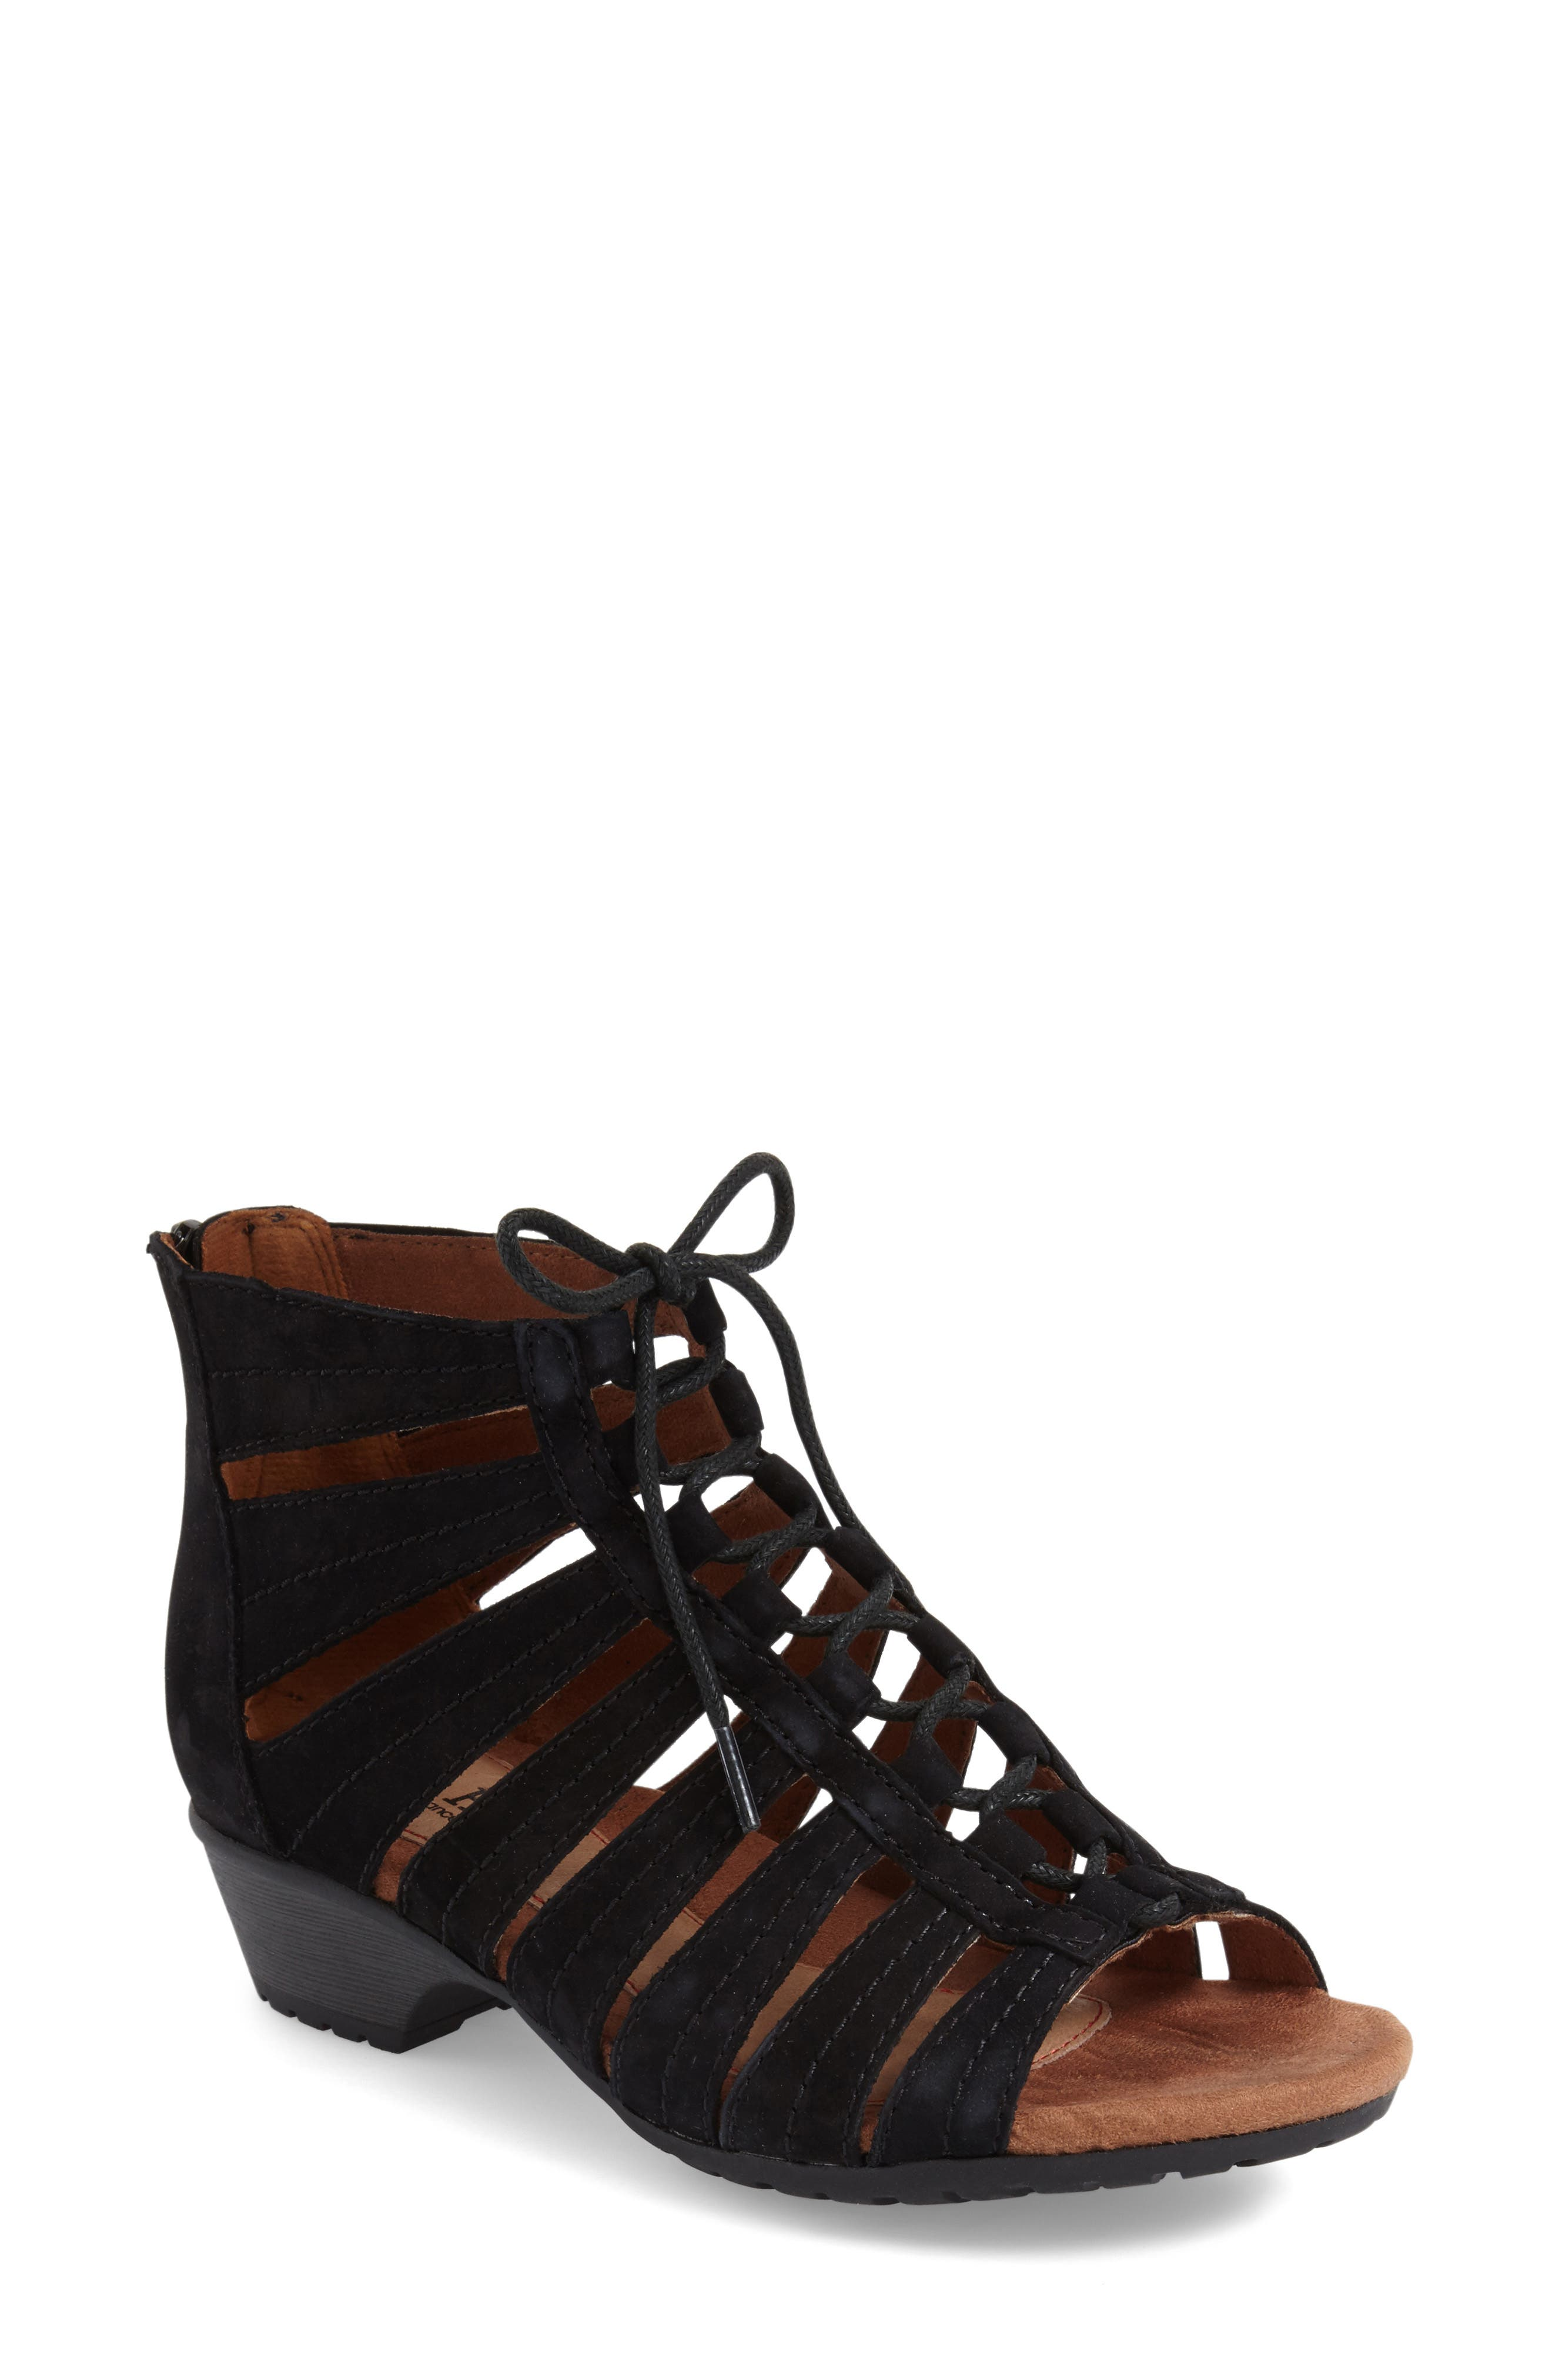 'Gabby' Lace-Up Sandal,                             Alternate thumbnail 19, color,